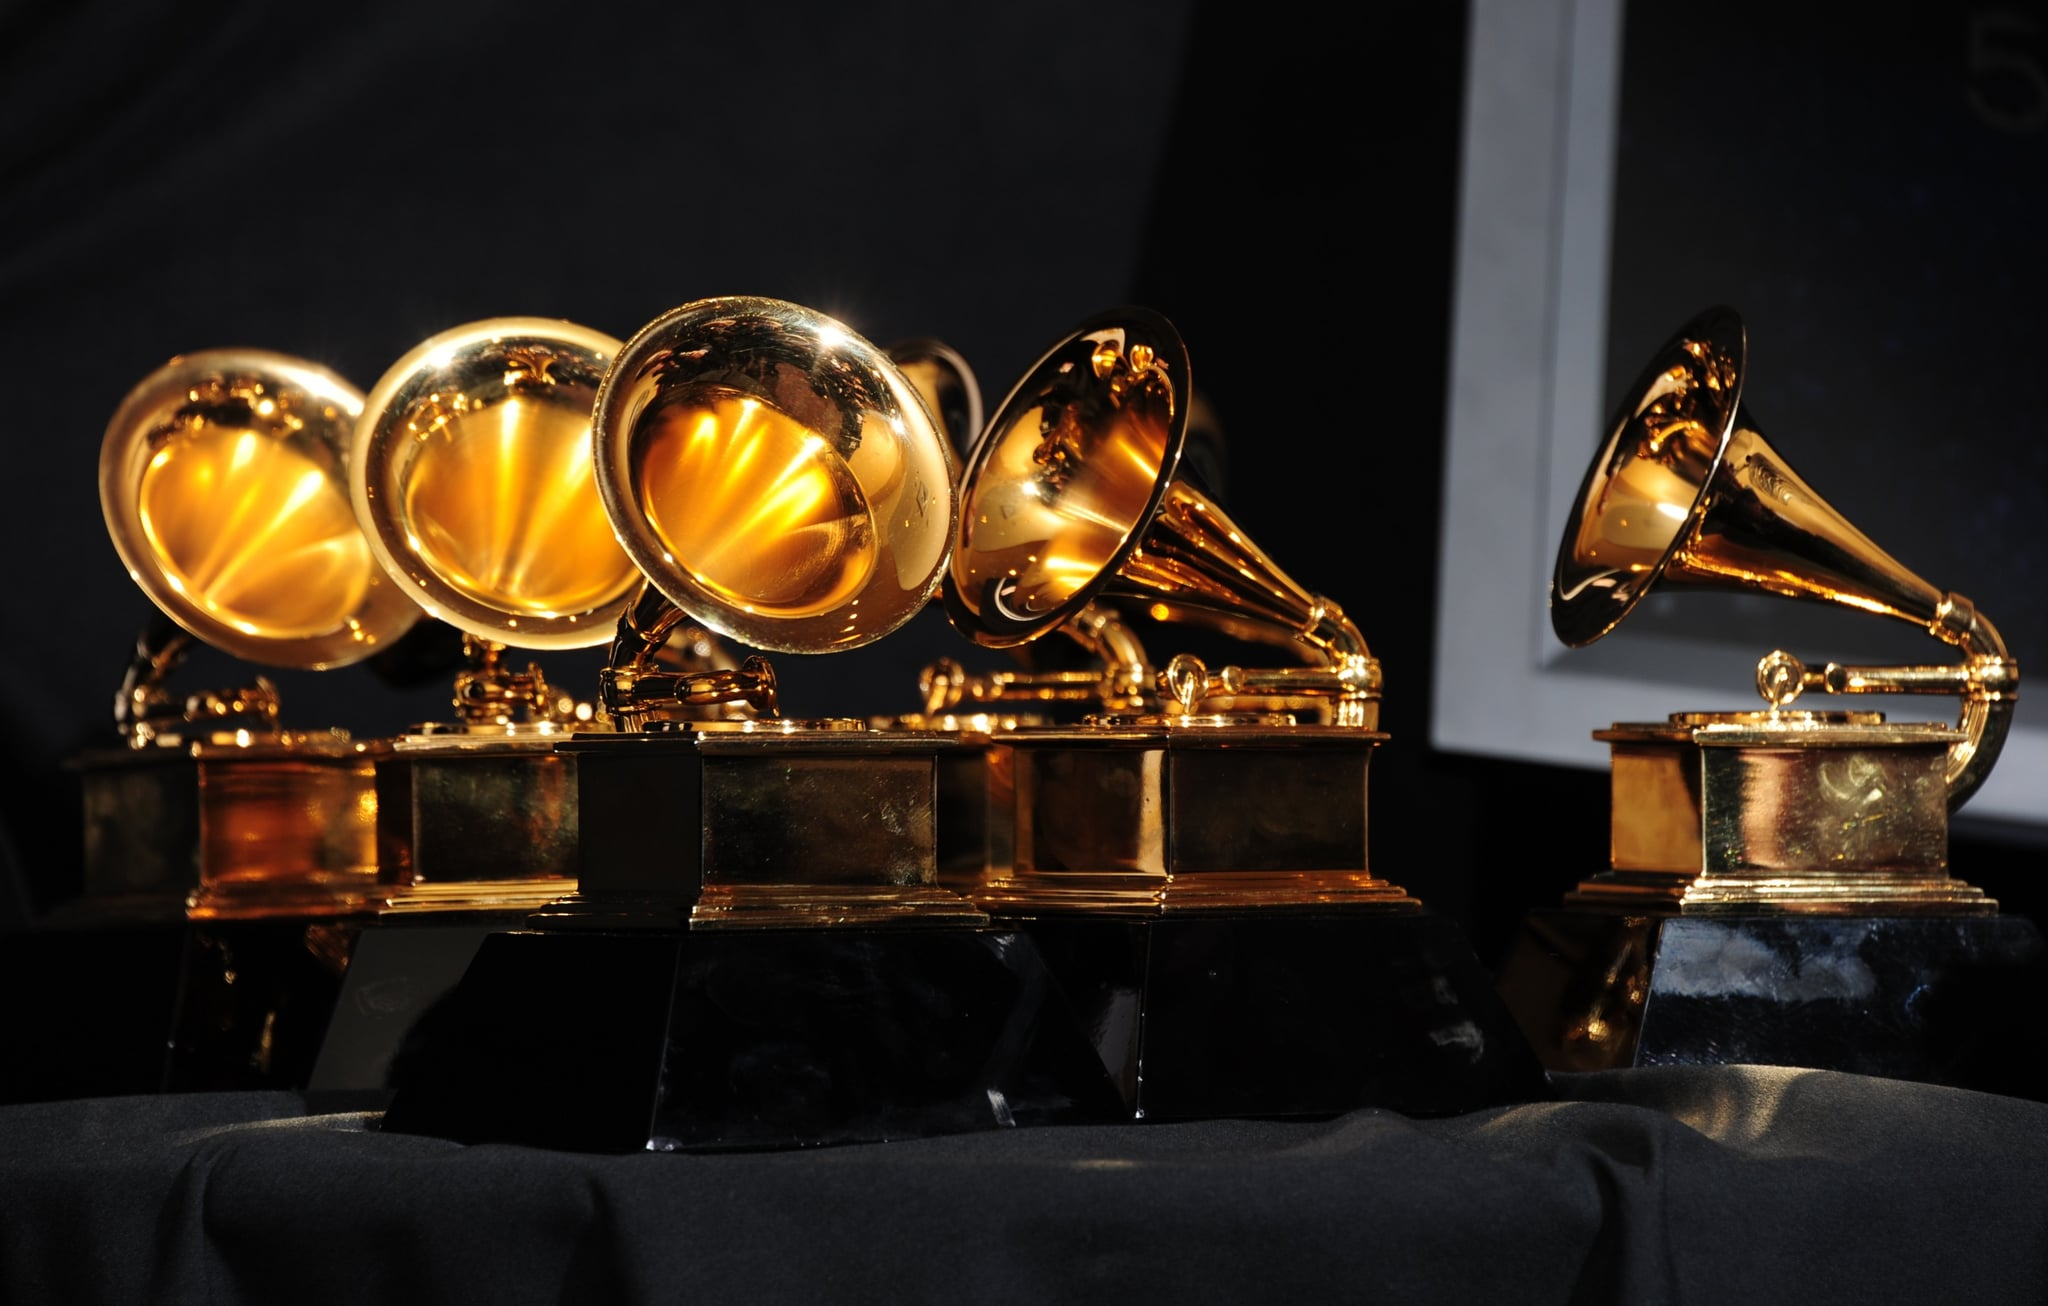 The six trophies for Adele are displayed backstage at the 54th Grammy Awards in Los Angeles, California, February 12, 2012. AFP PHOTO/  FREDERIC J. BROWN (Photo credit should read FREDERIC J. BROWN/AFP via Getty Images)